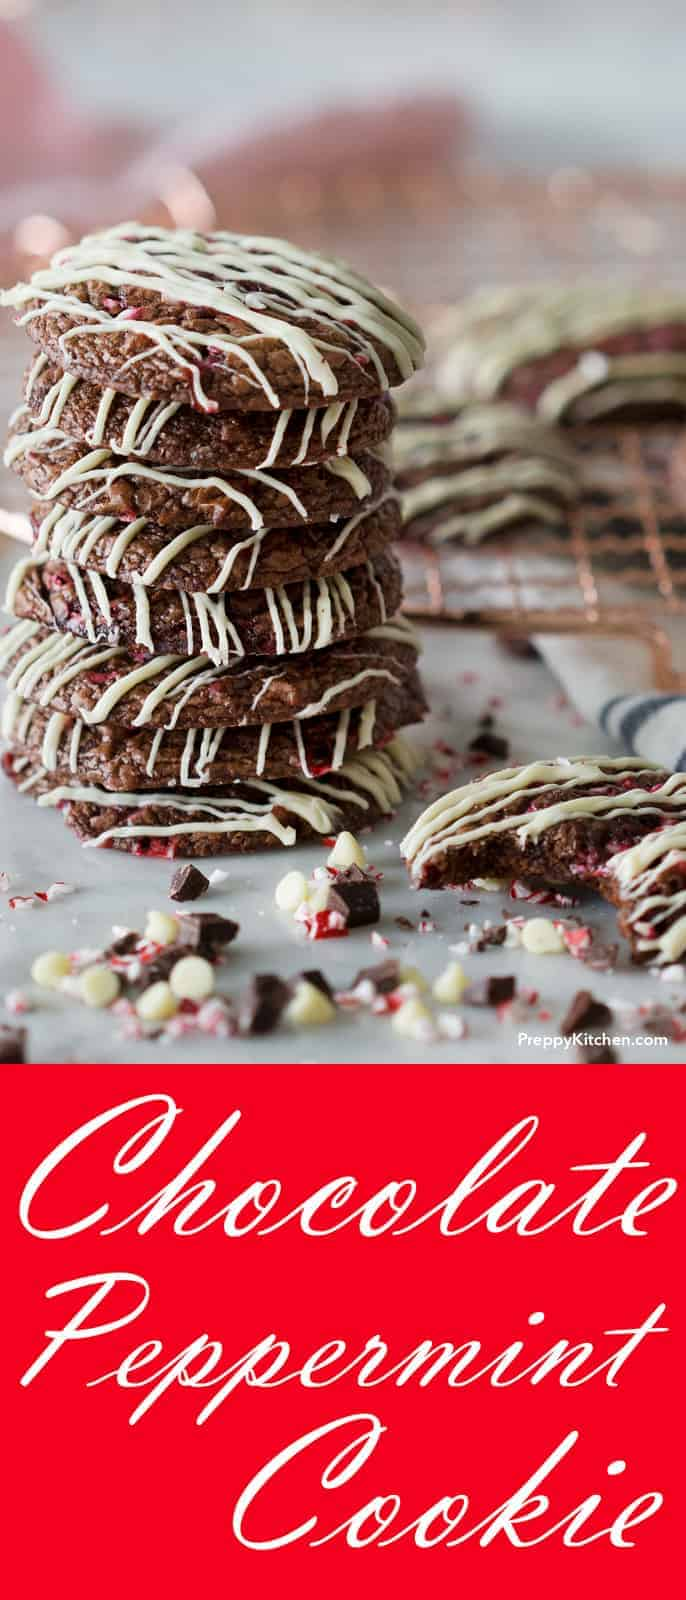 These delicious chocolate cookies with white chocolate drizzle and crushed peppermint are the perfect way to spread holiday cheer!